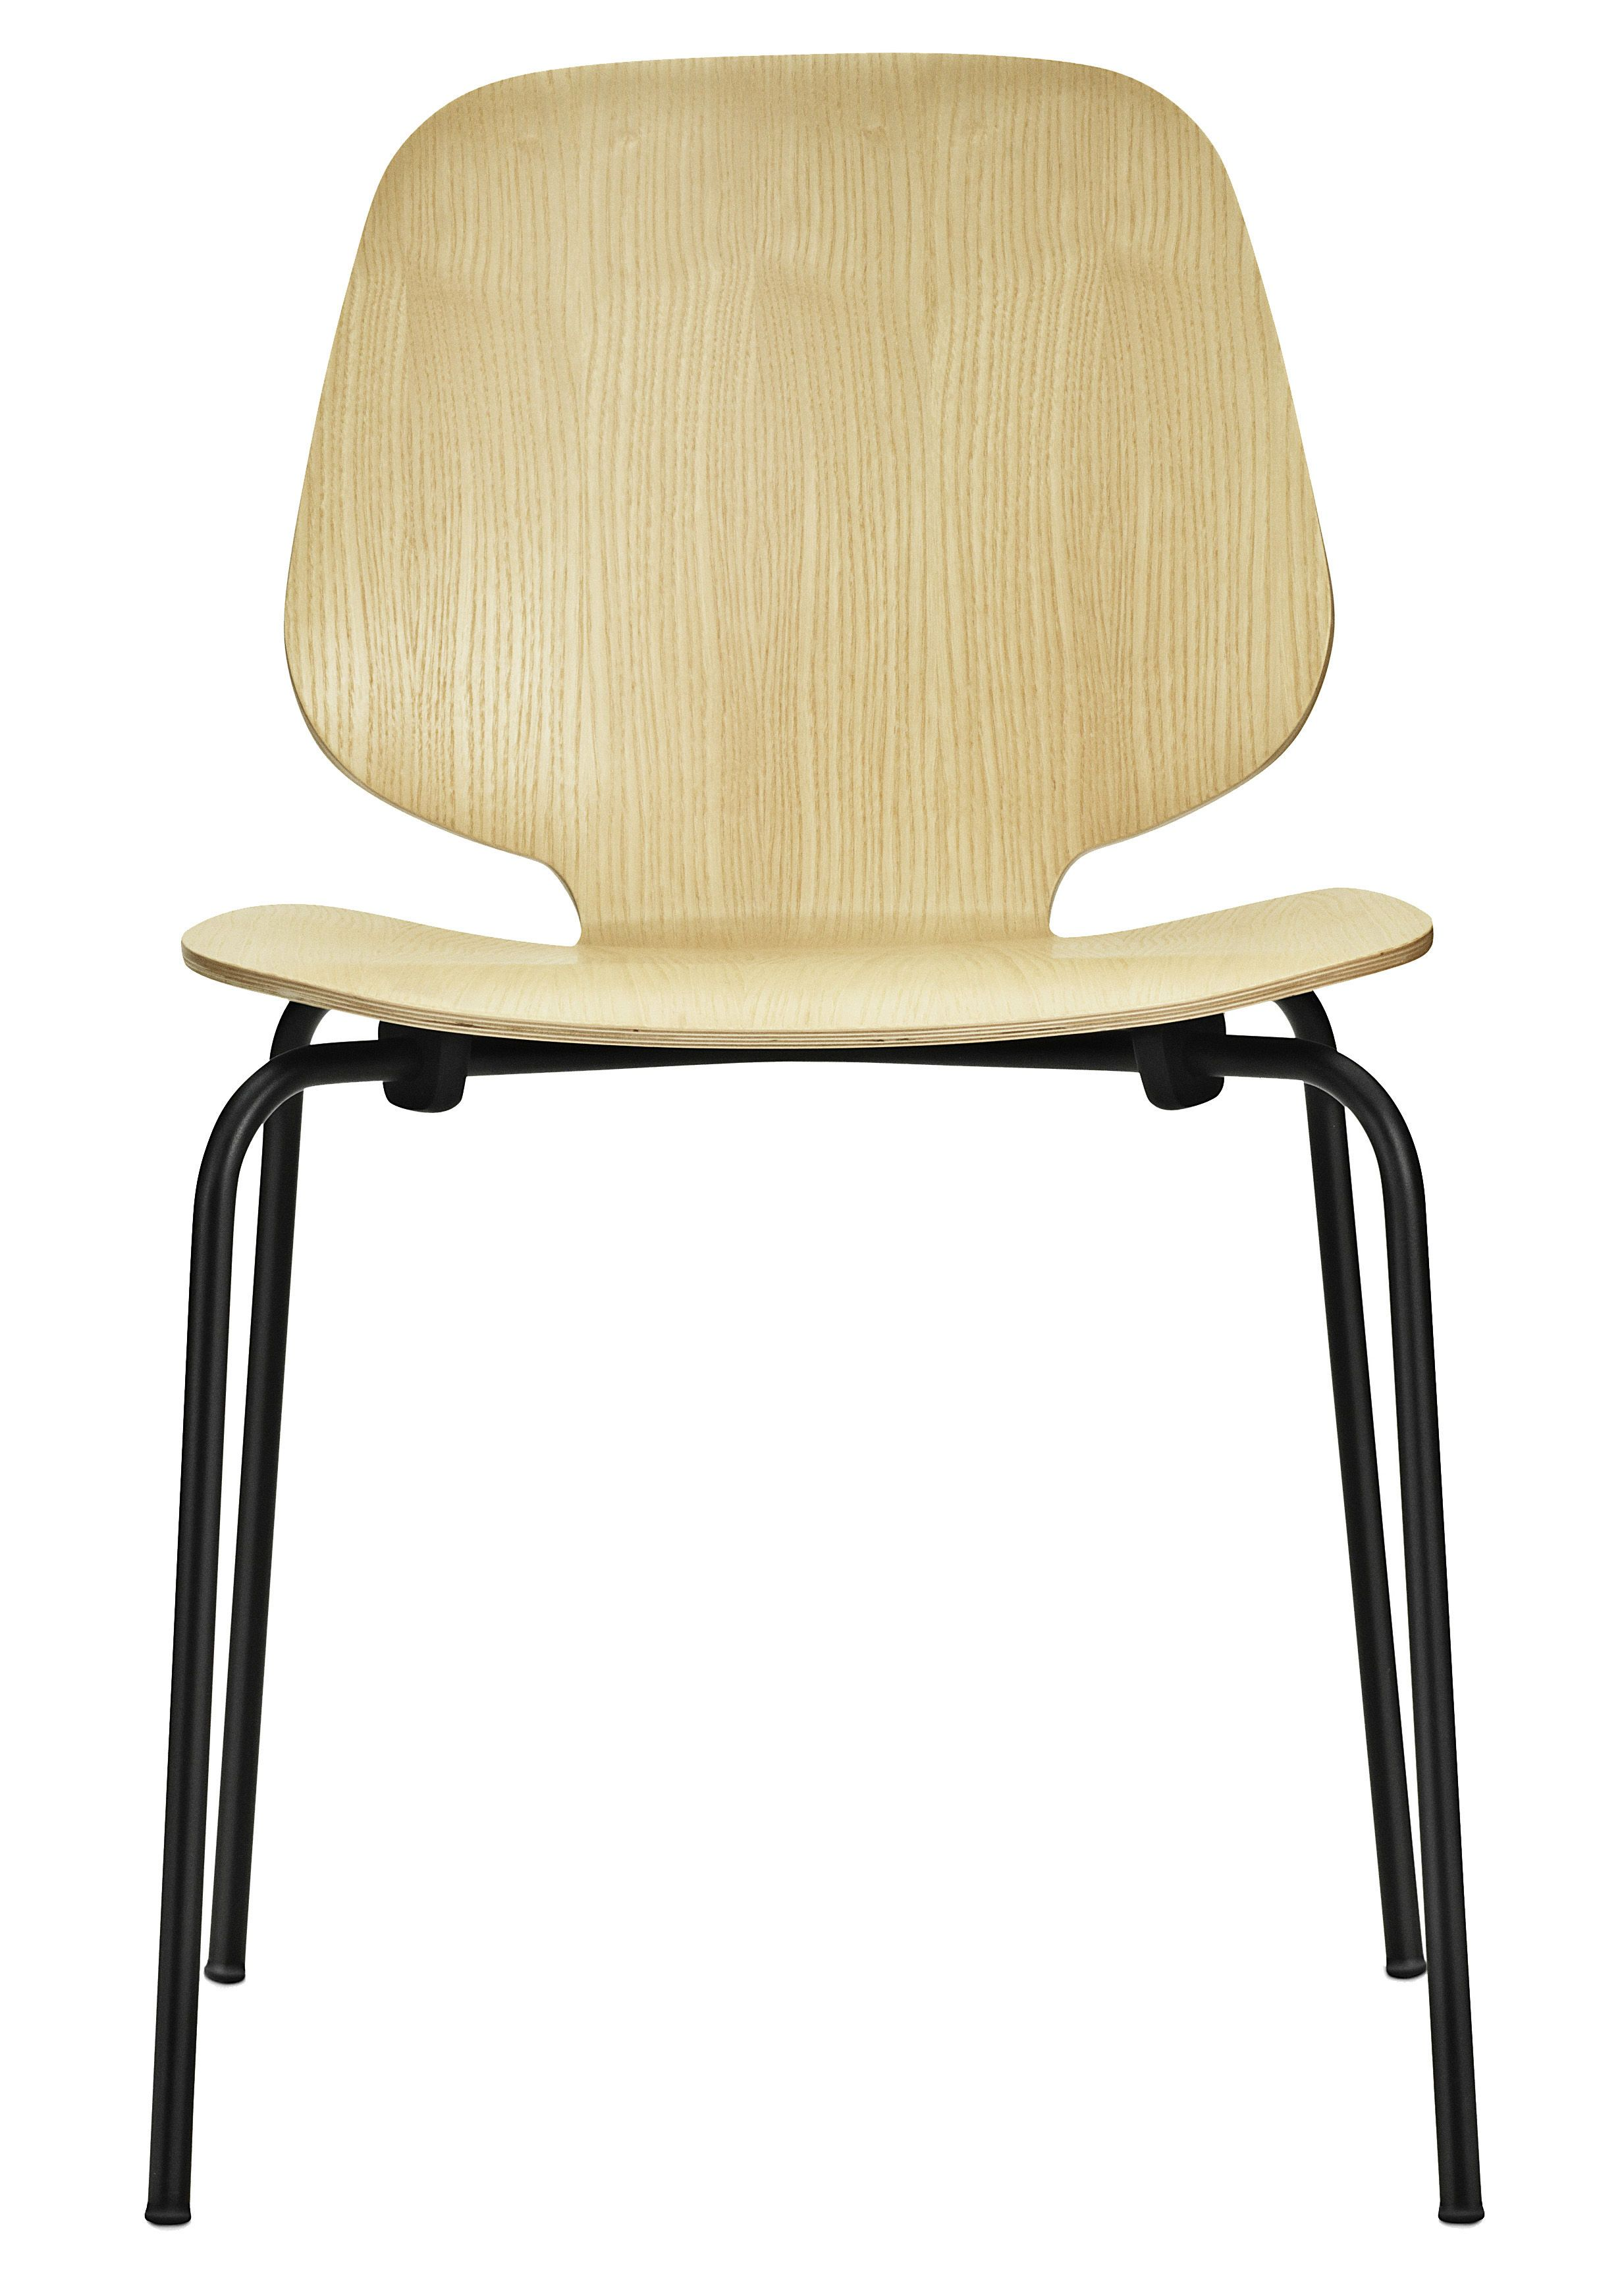 Assise Copenhagen Empilable Chair Bois Normann My Chaise 2YWEIDH9